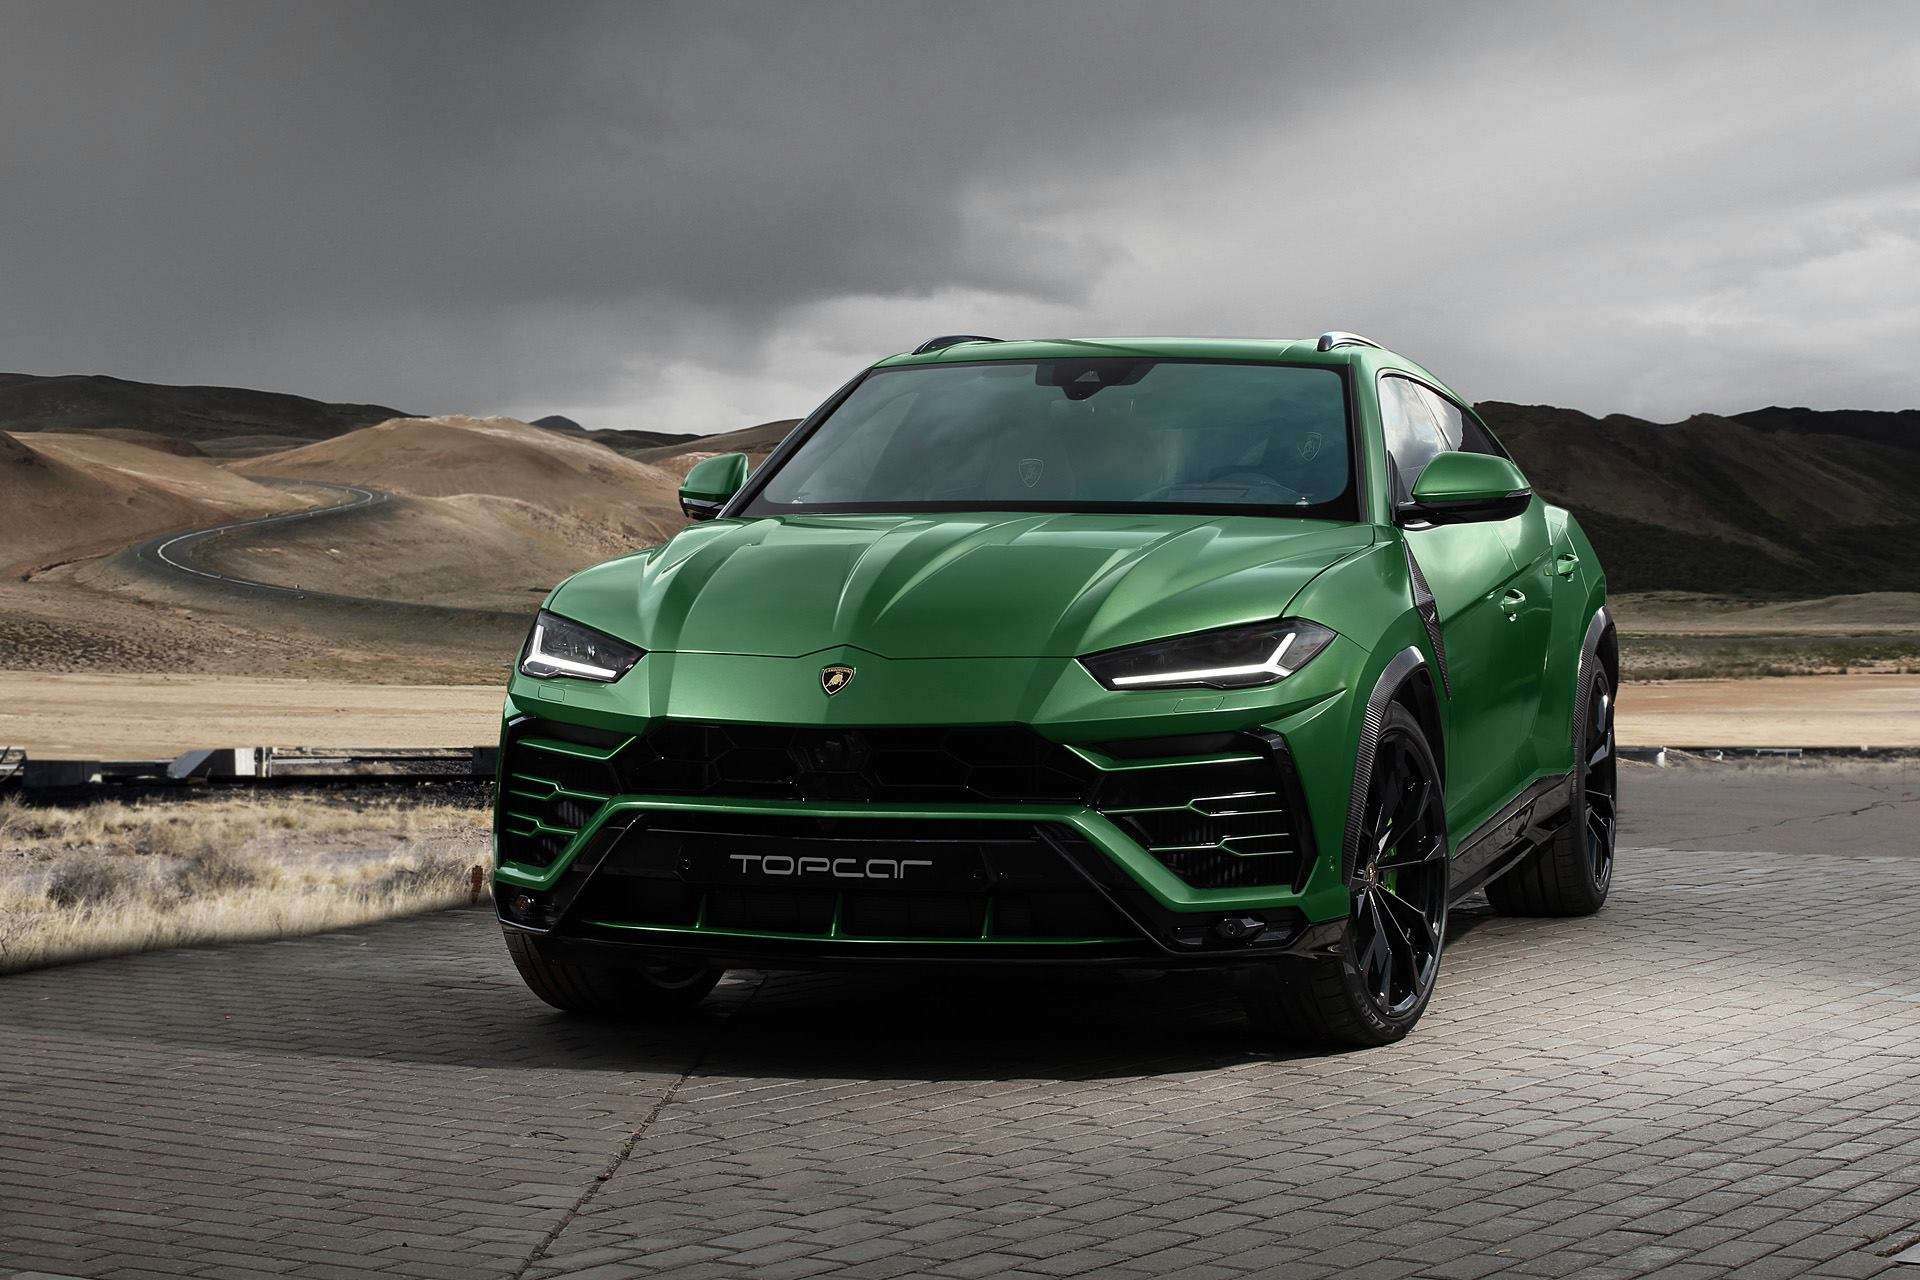 topcar lamborghini urus revealed with military green paint andwhat\u0027s more, topcar plan to show another urus soon which will add modifications to the bottom part of the front bumper, a larger rear diffuser,